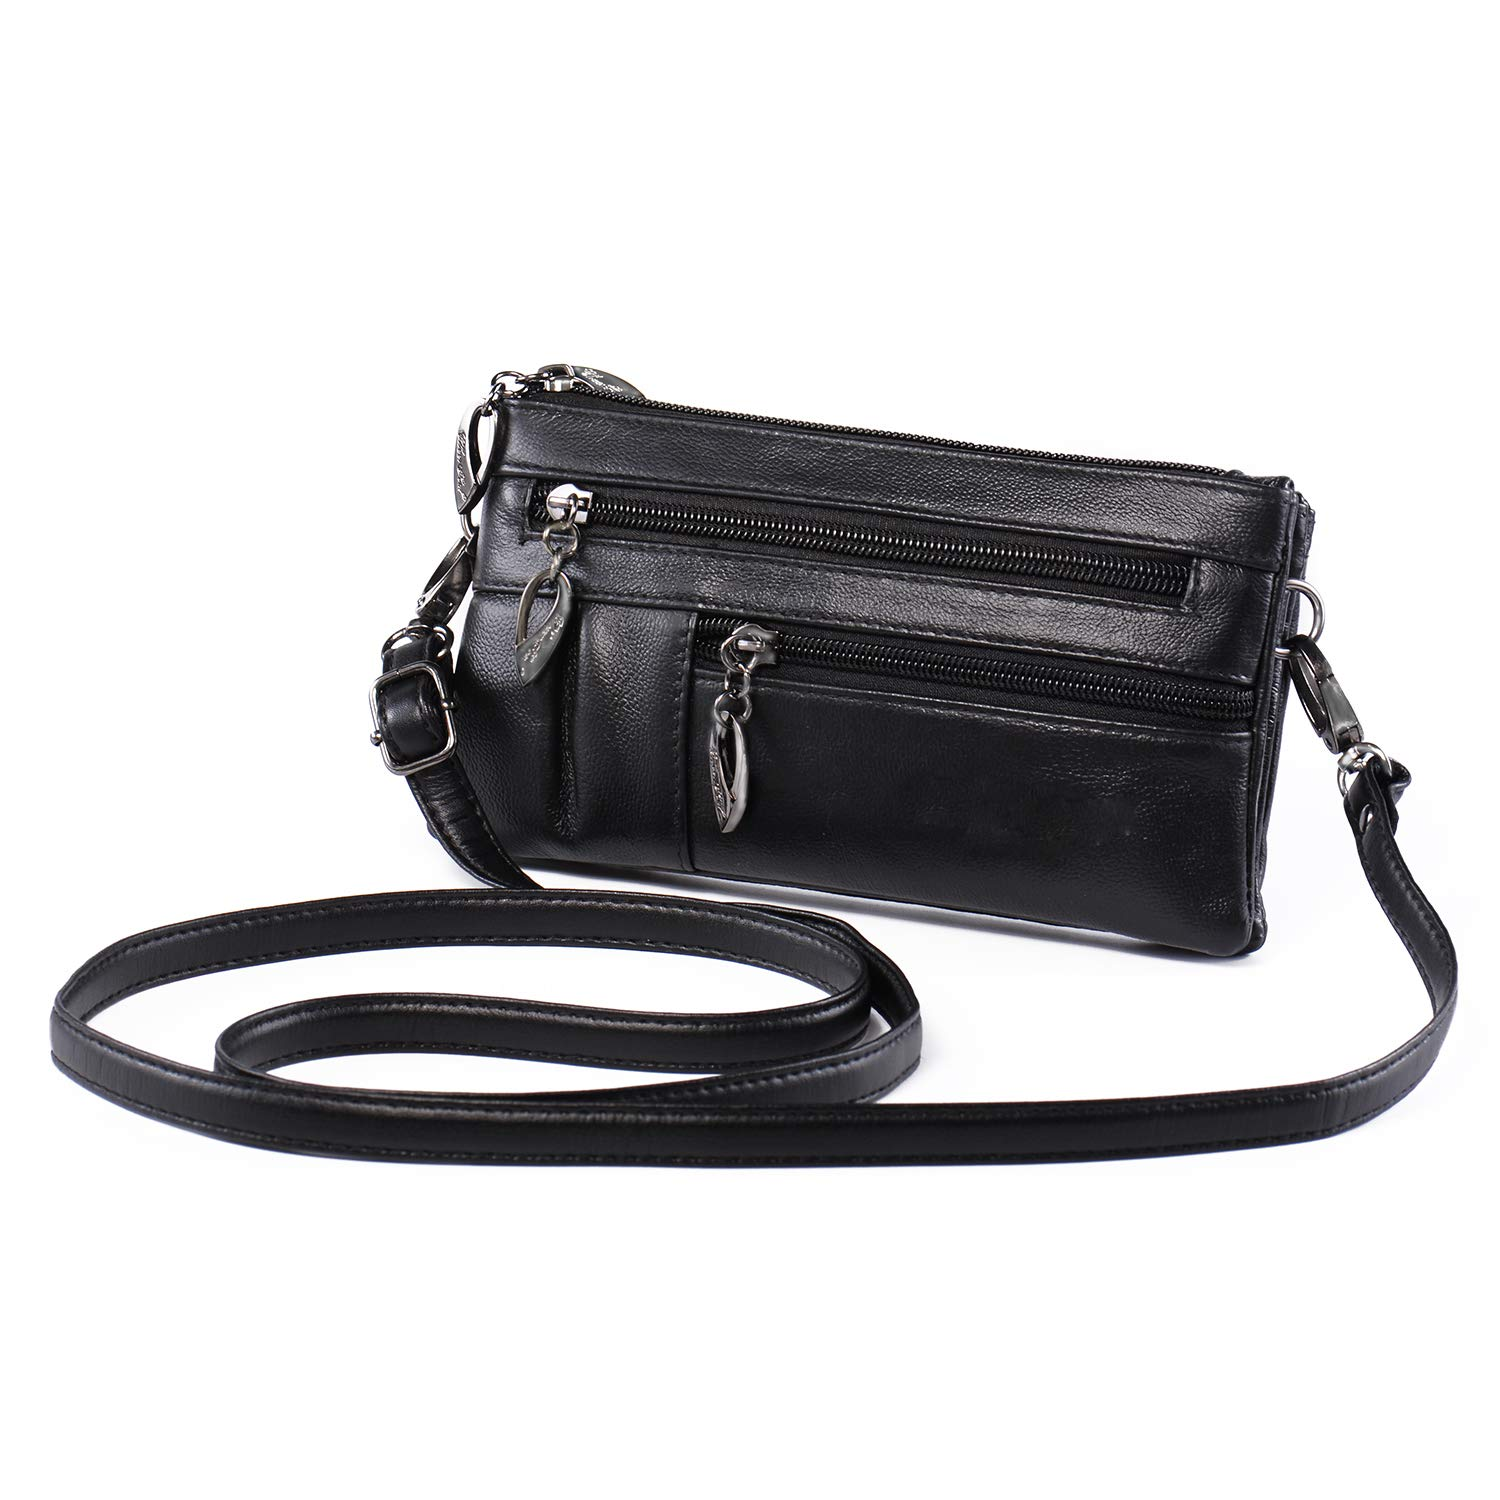 385ef013707f Wristlet Wallet for Women Leather Clutch Handbag Small Crossbody Purse  Cellphone Bag Pouch + Nail Clipper